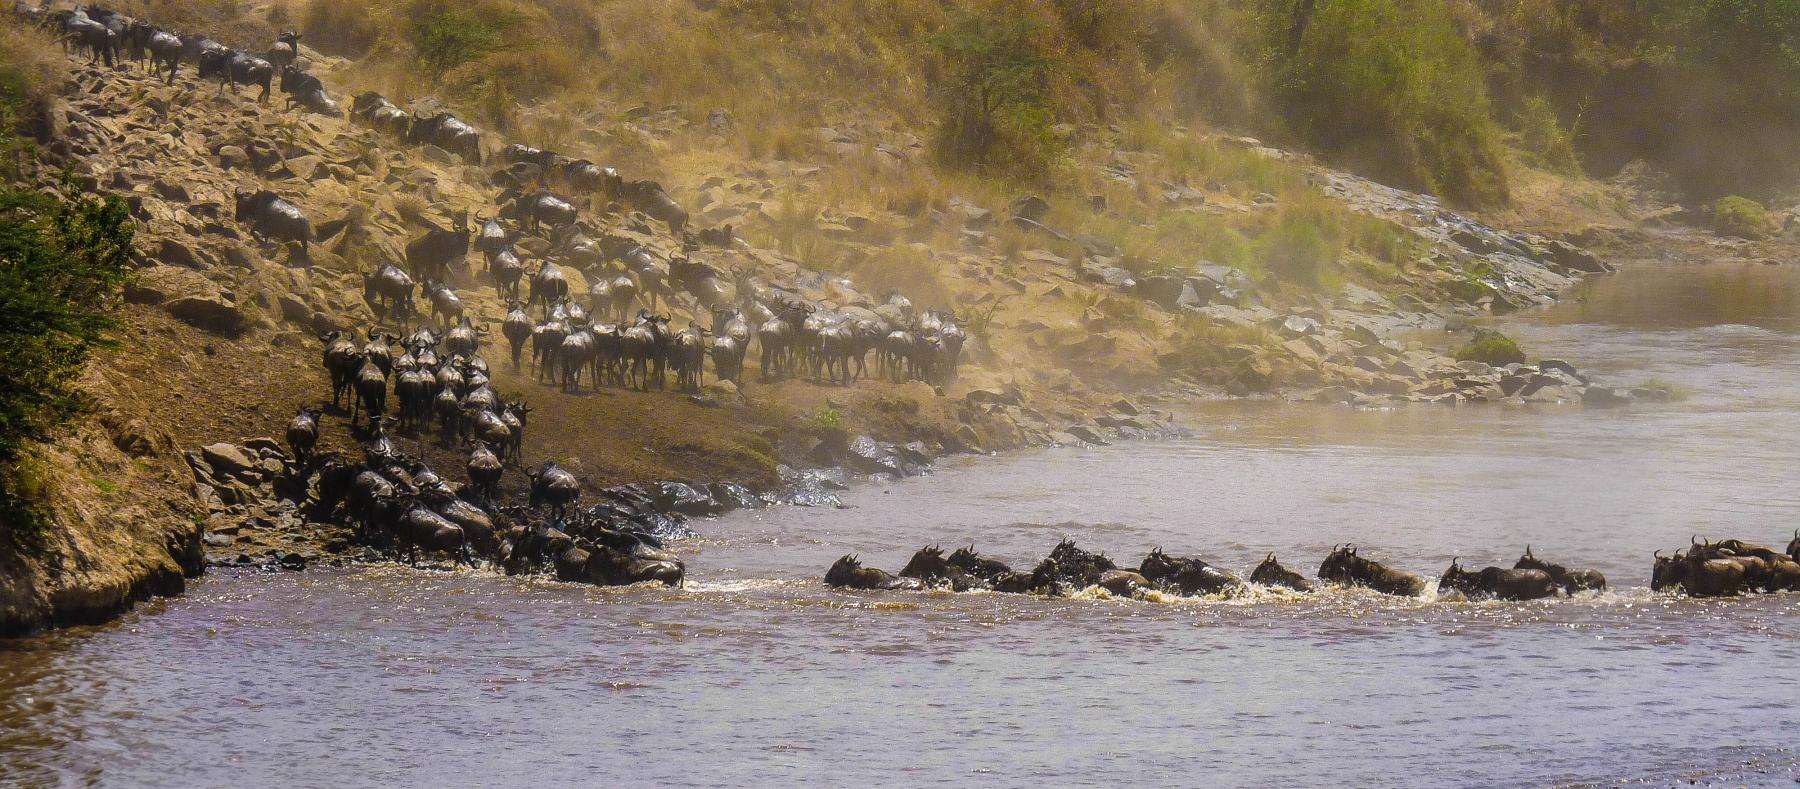 Let's experience the greatest wildlife show and migration - Masai Mara Mid-Range starting at Nairobi County, Kenya